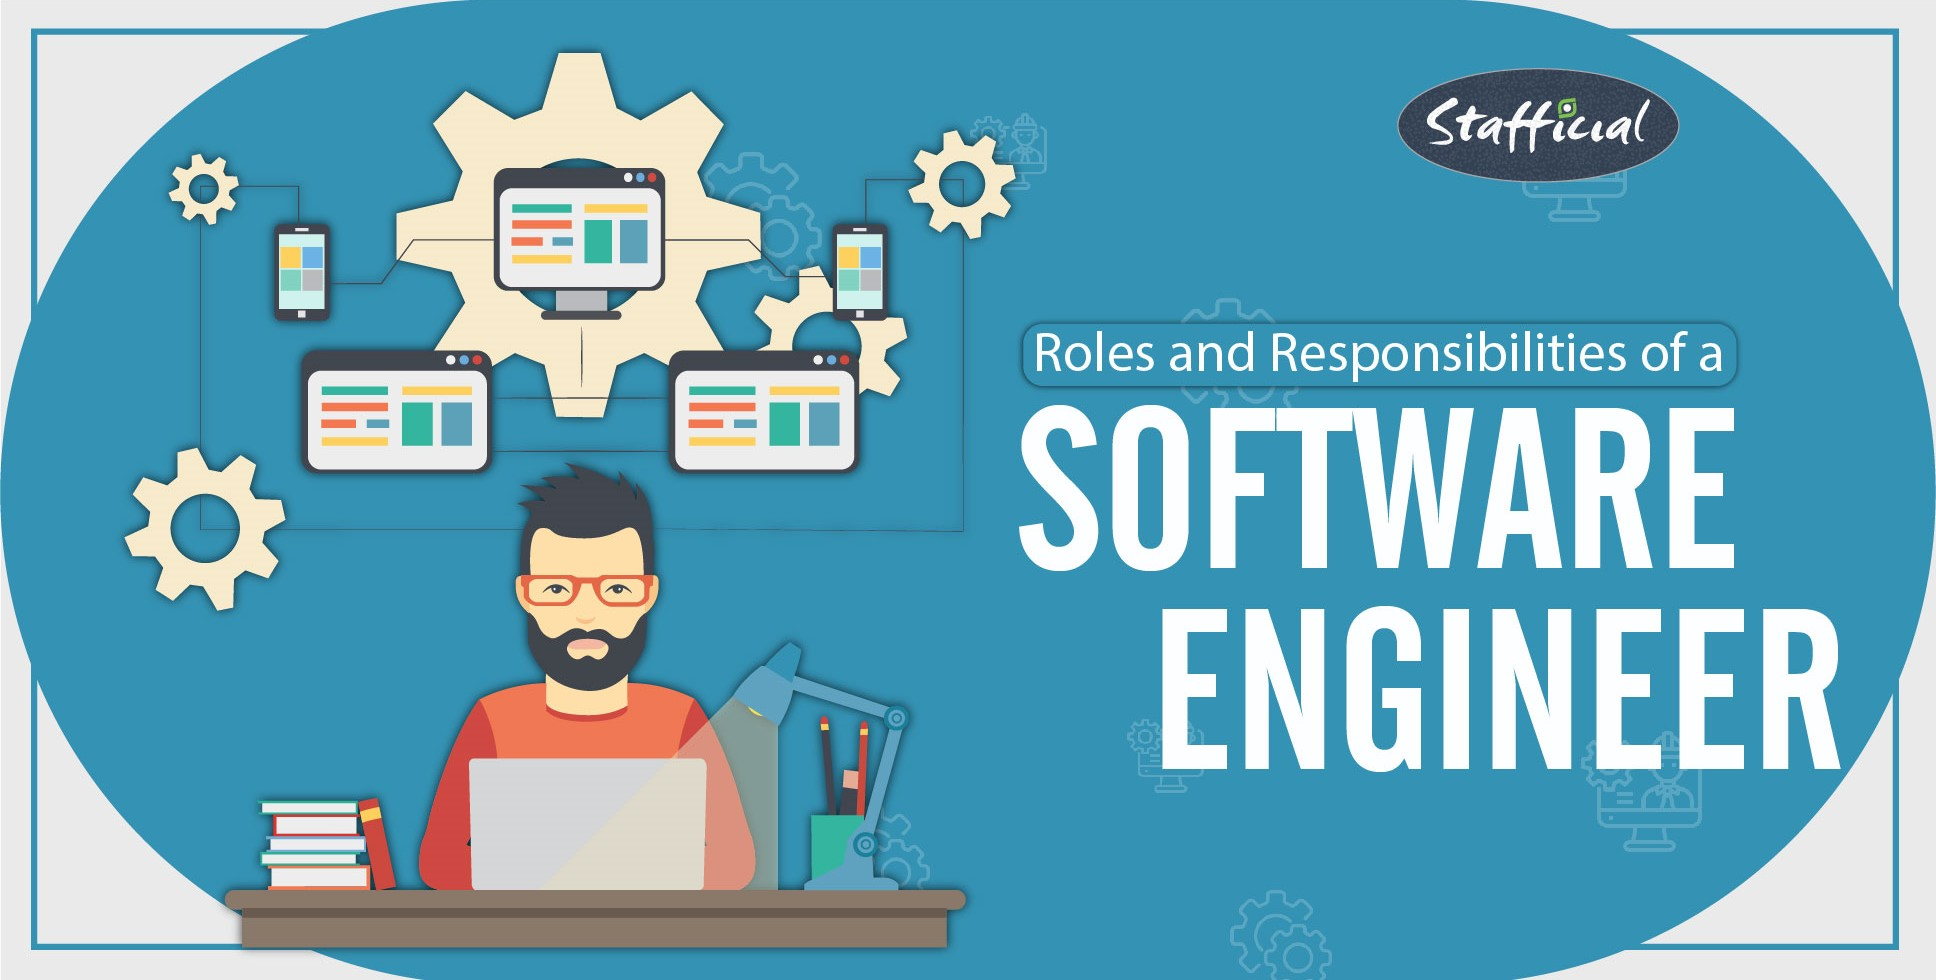 What Are The Roles and Responsibilities Of A Software Engineer / Developer?